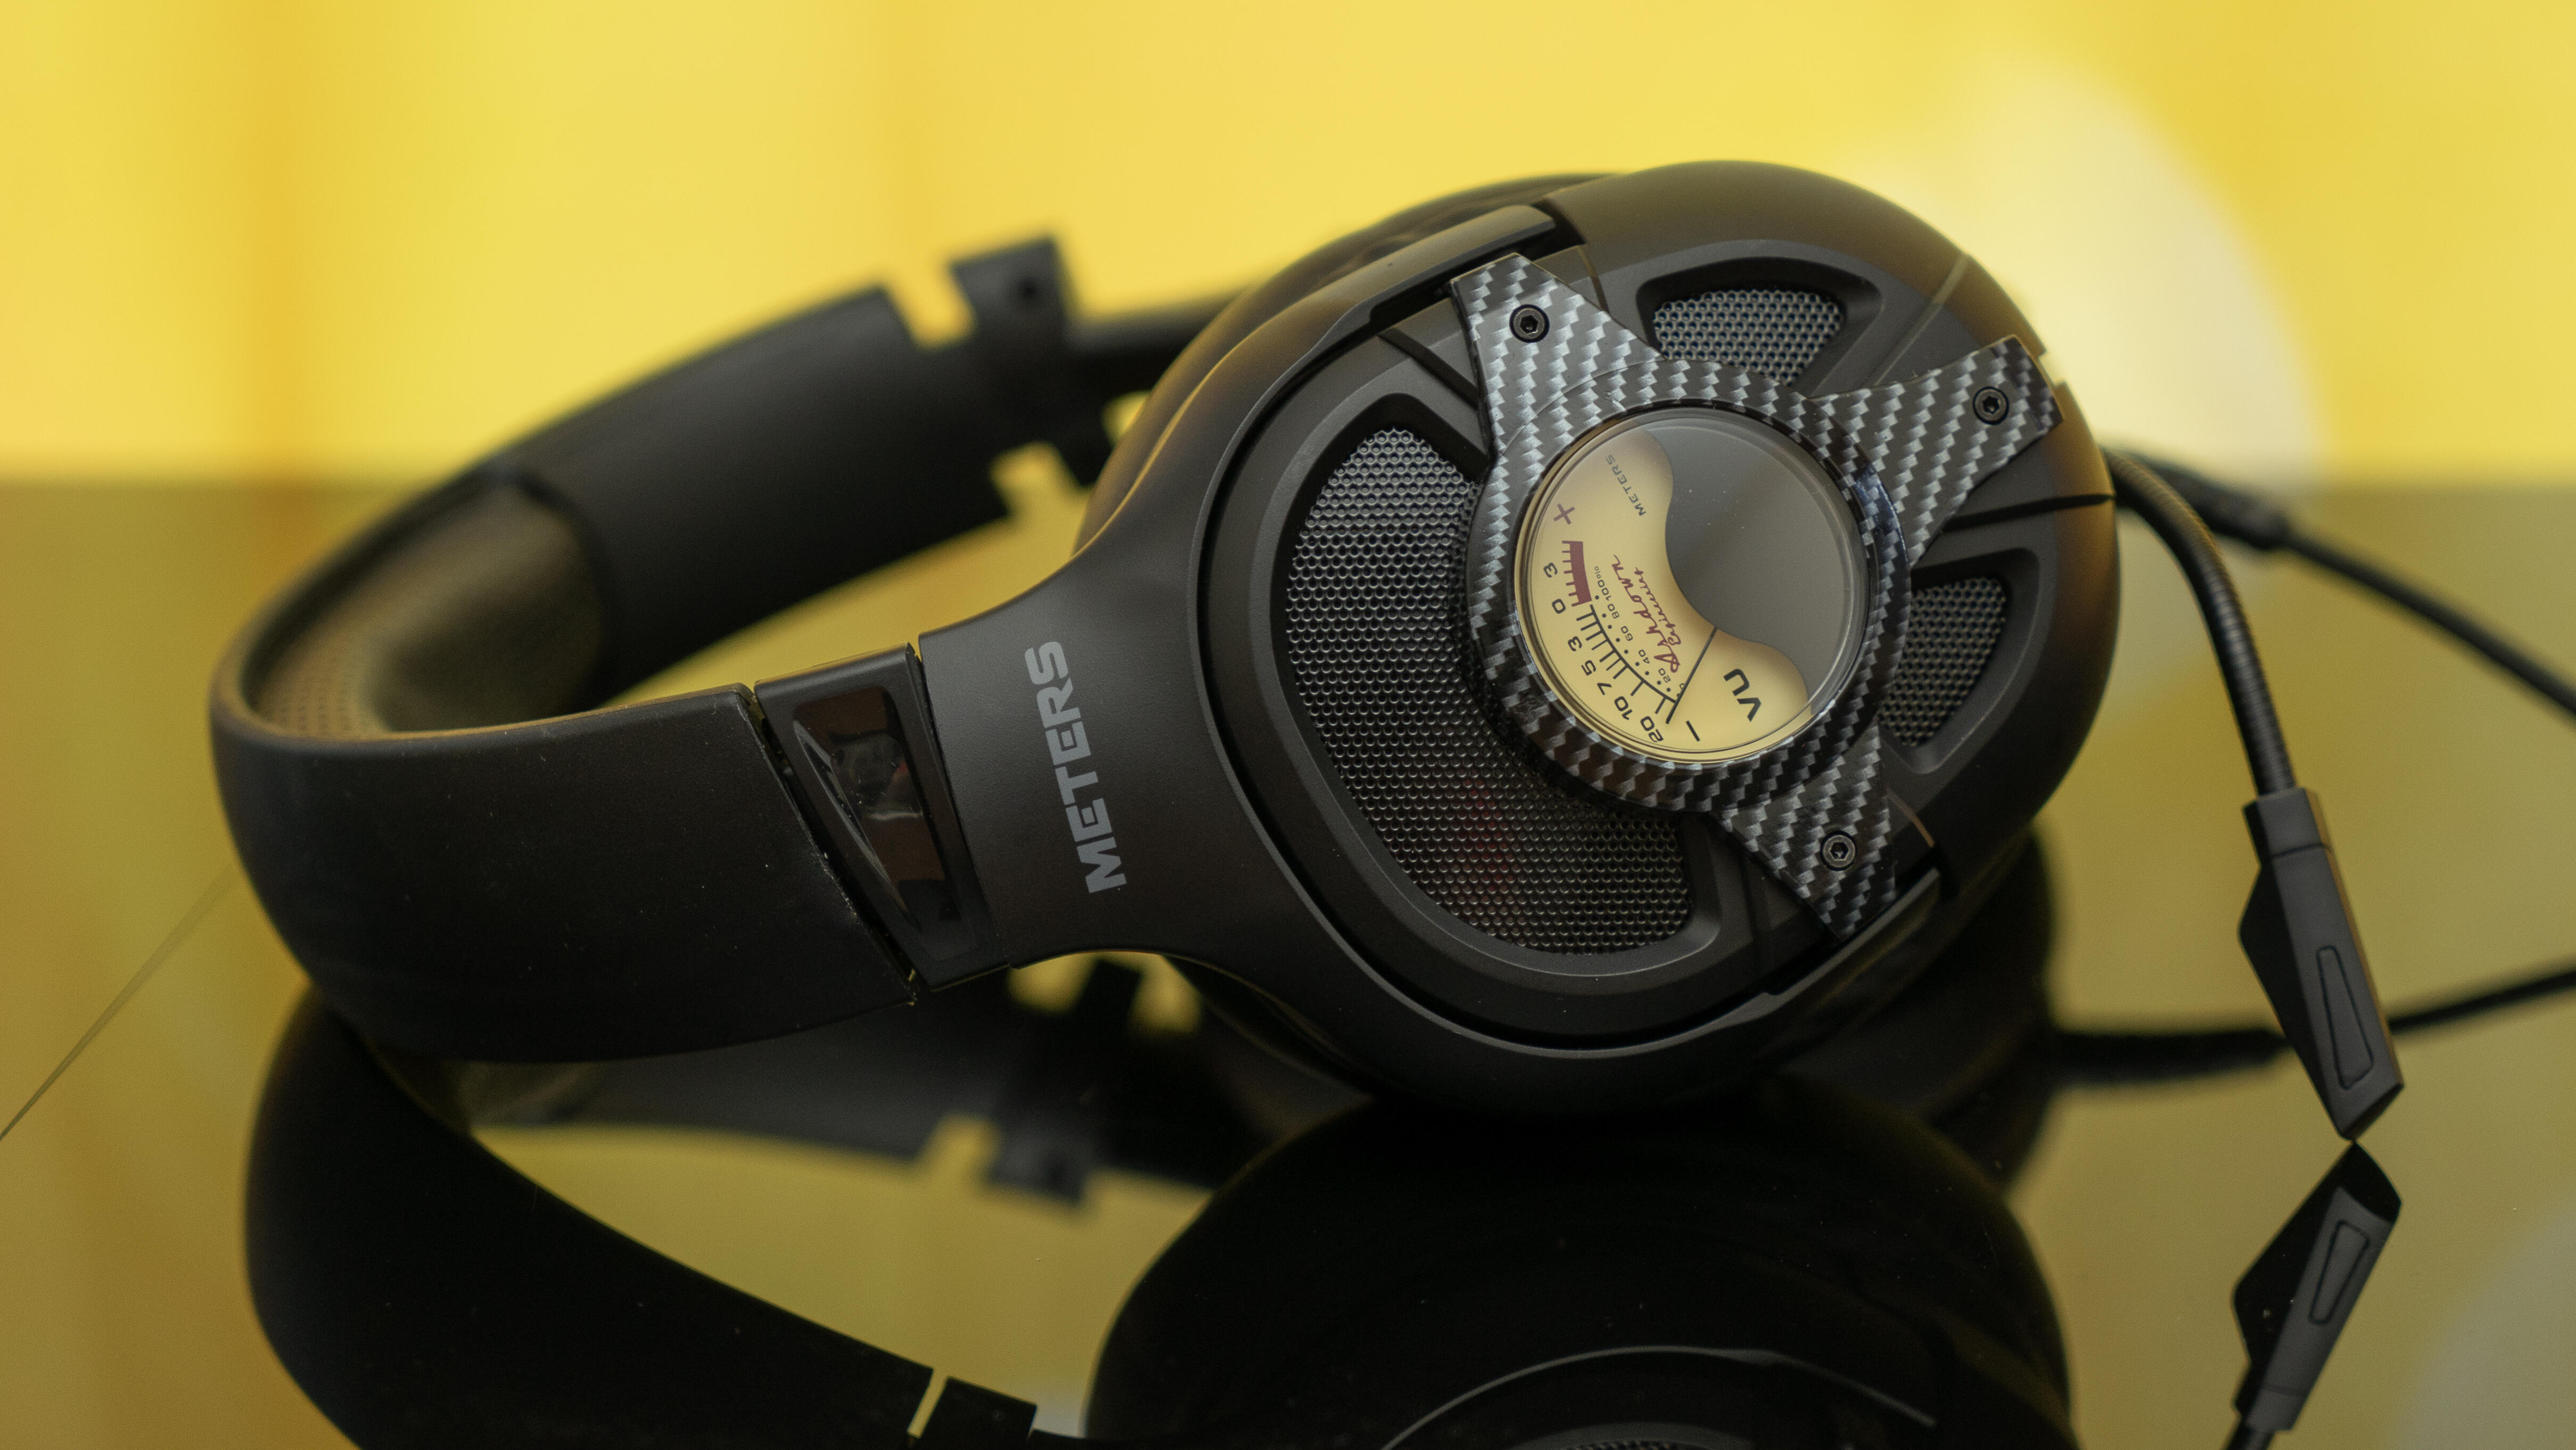 Meters Level Up gaming headset has VU meters on its earcups